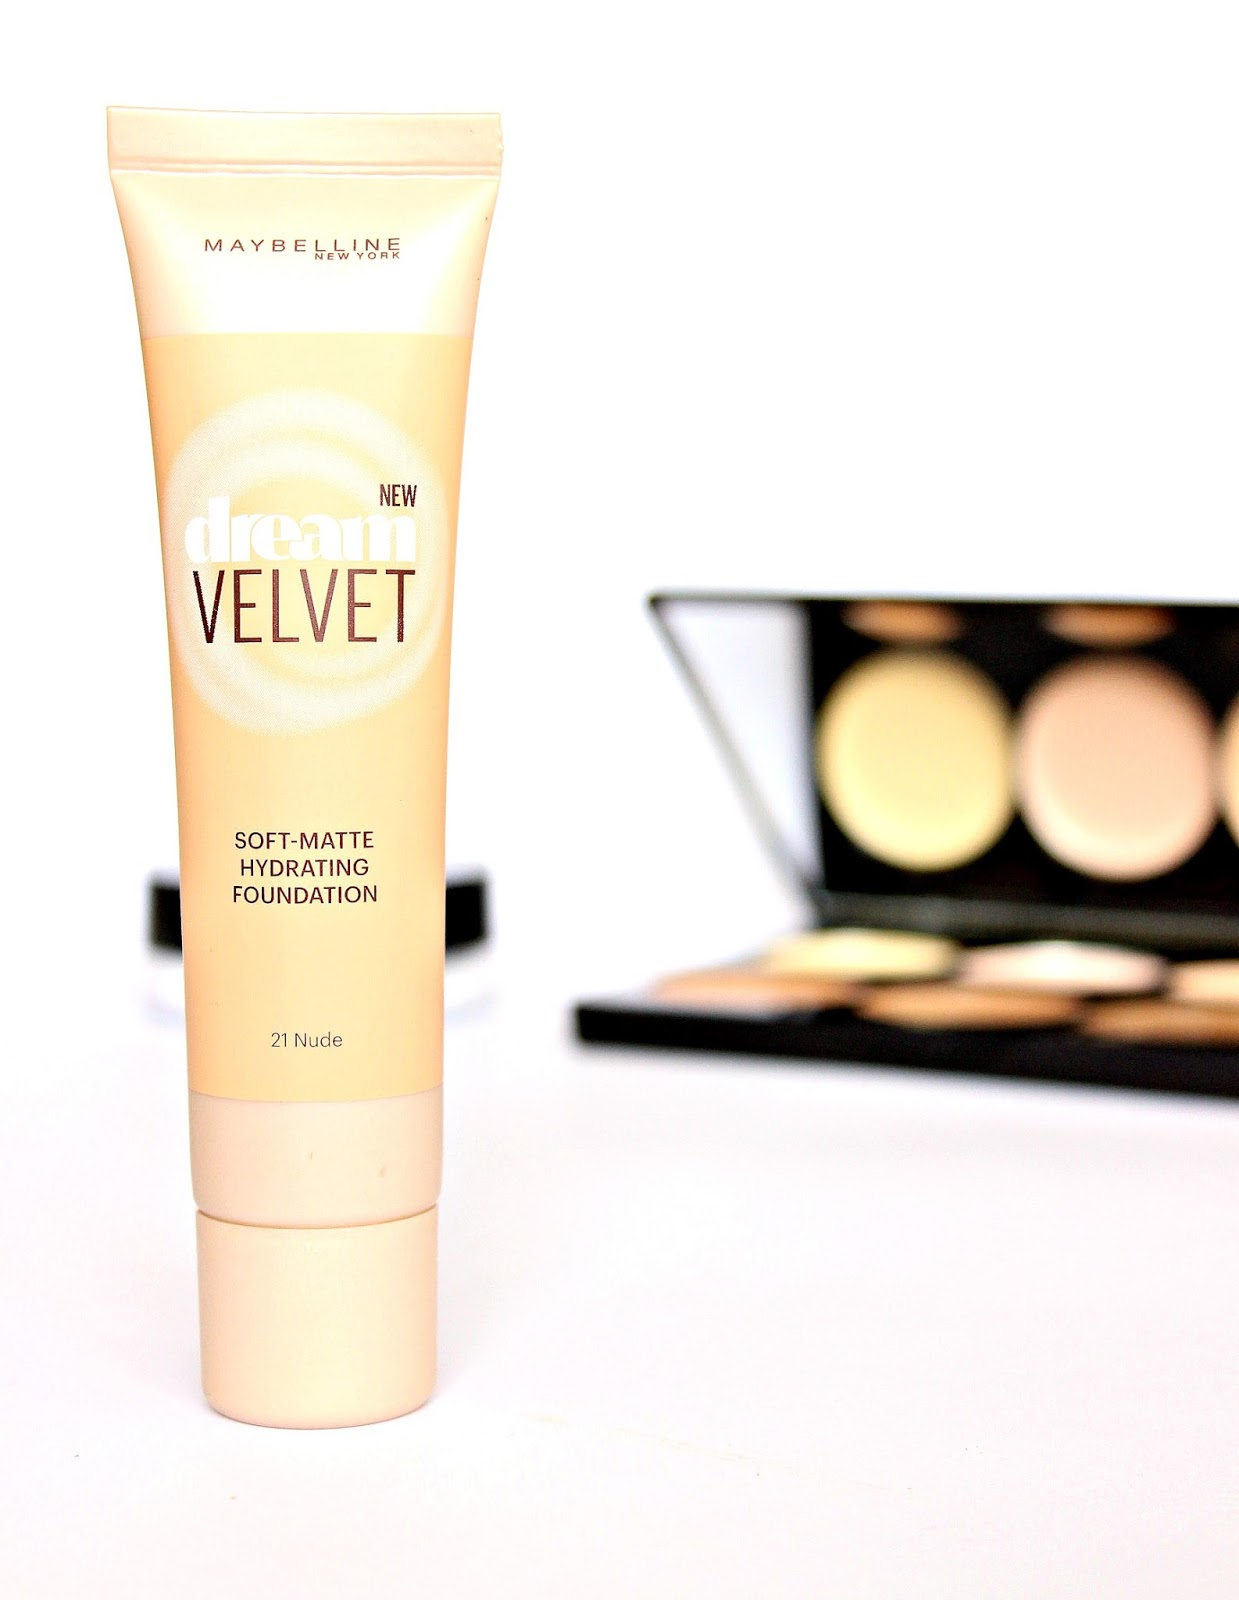 A picture of NEW Maybelline Dream Velvet Soft Matte Hydrating Foundation